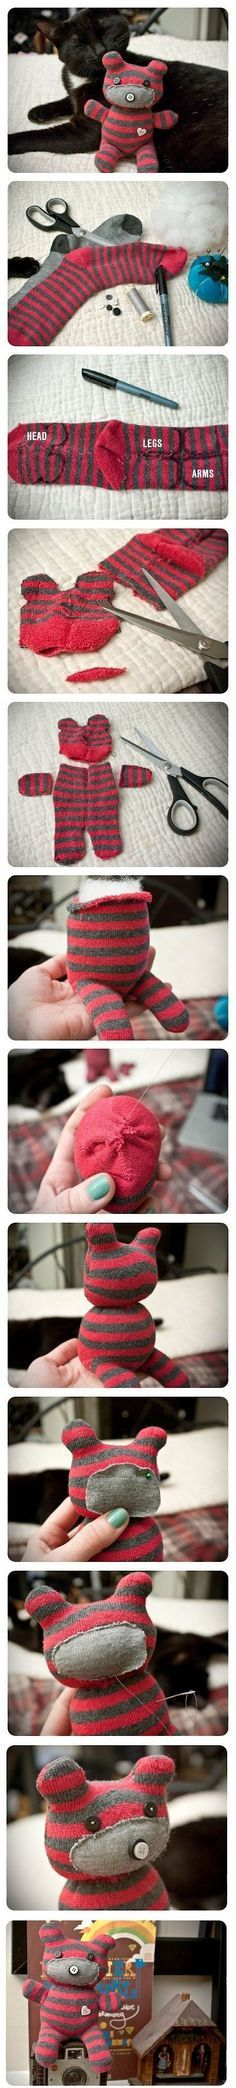 DIY Cute Little Teddy Bear. Cuter cat! :D by vernmh: